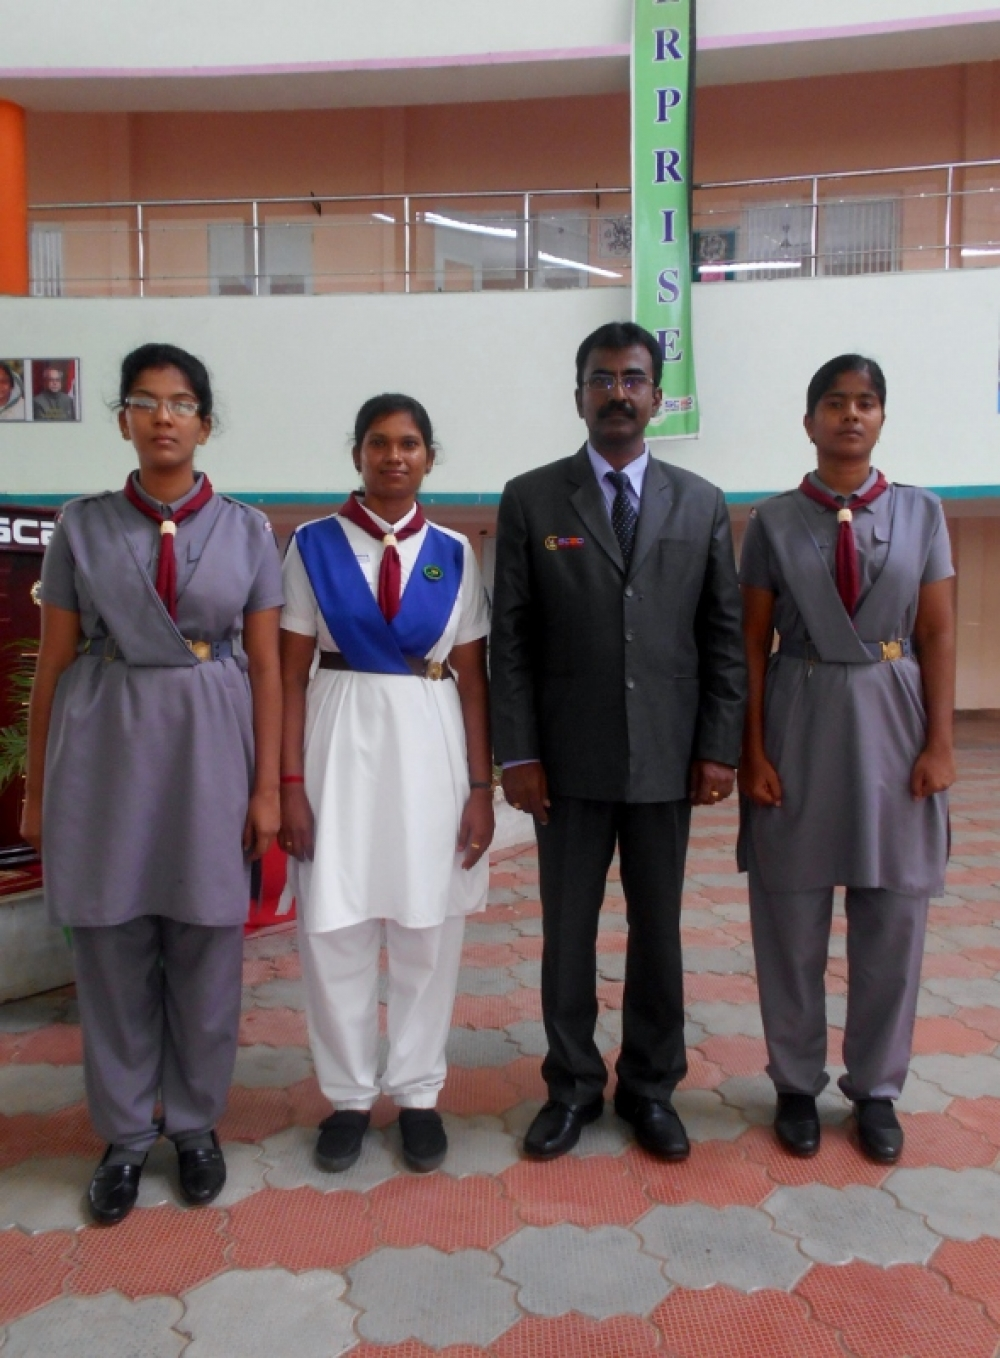 THE BHARATH SCOUTS AND GUIDES